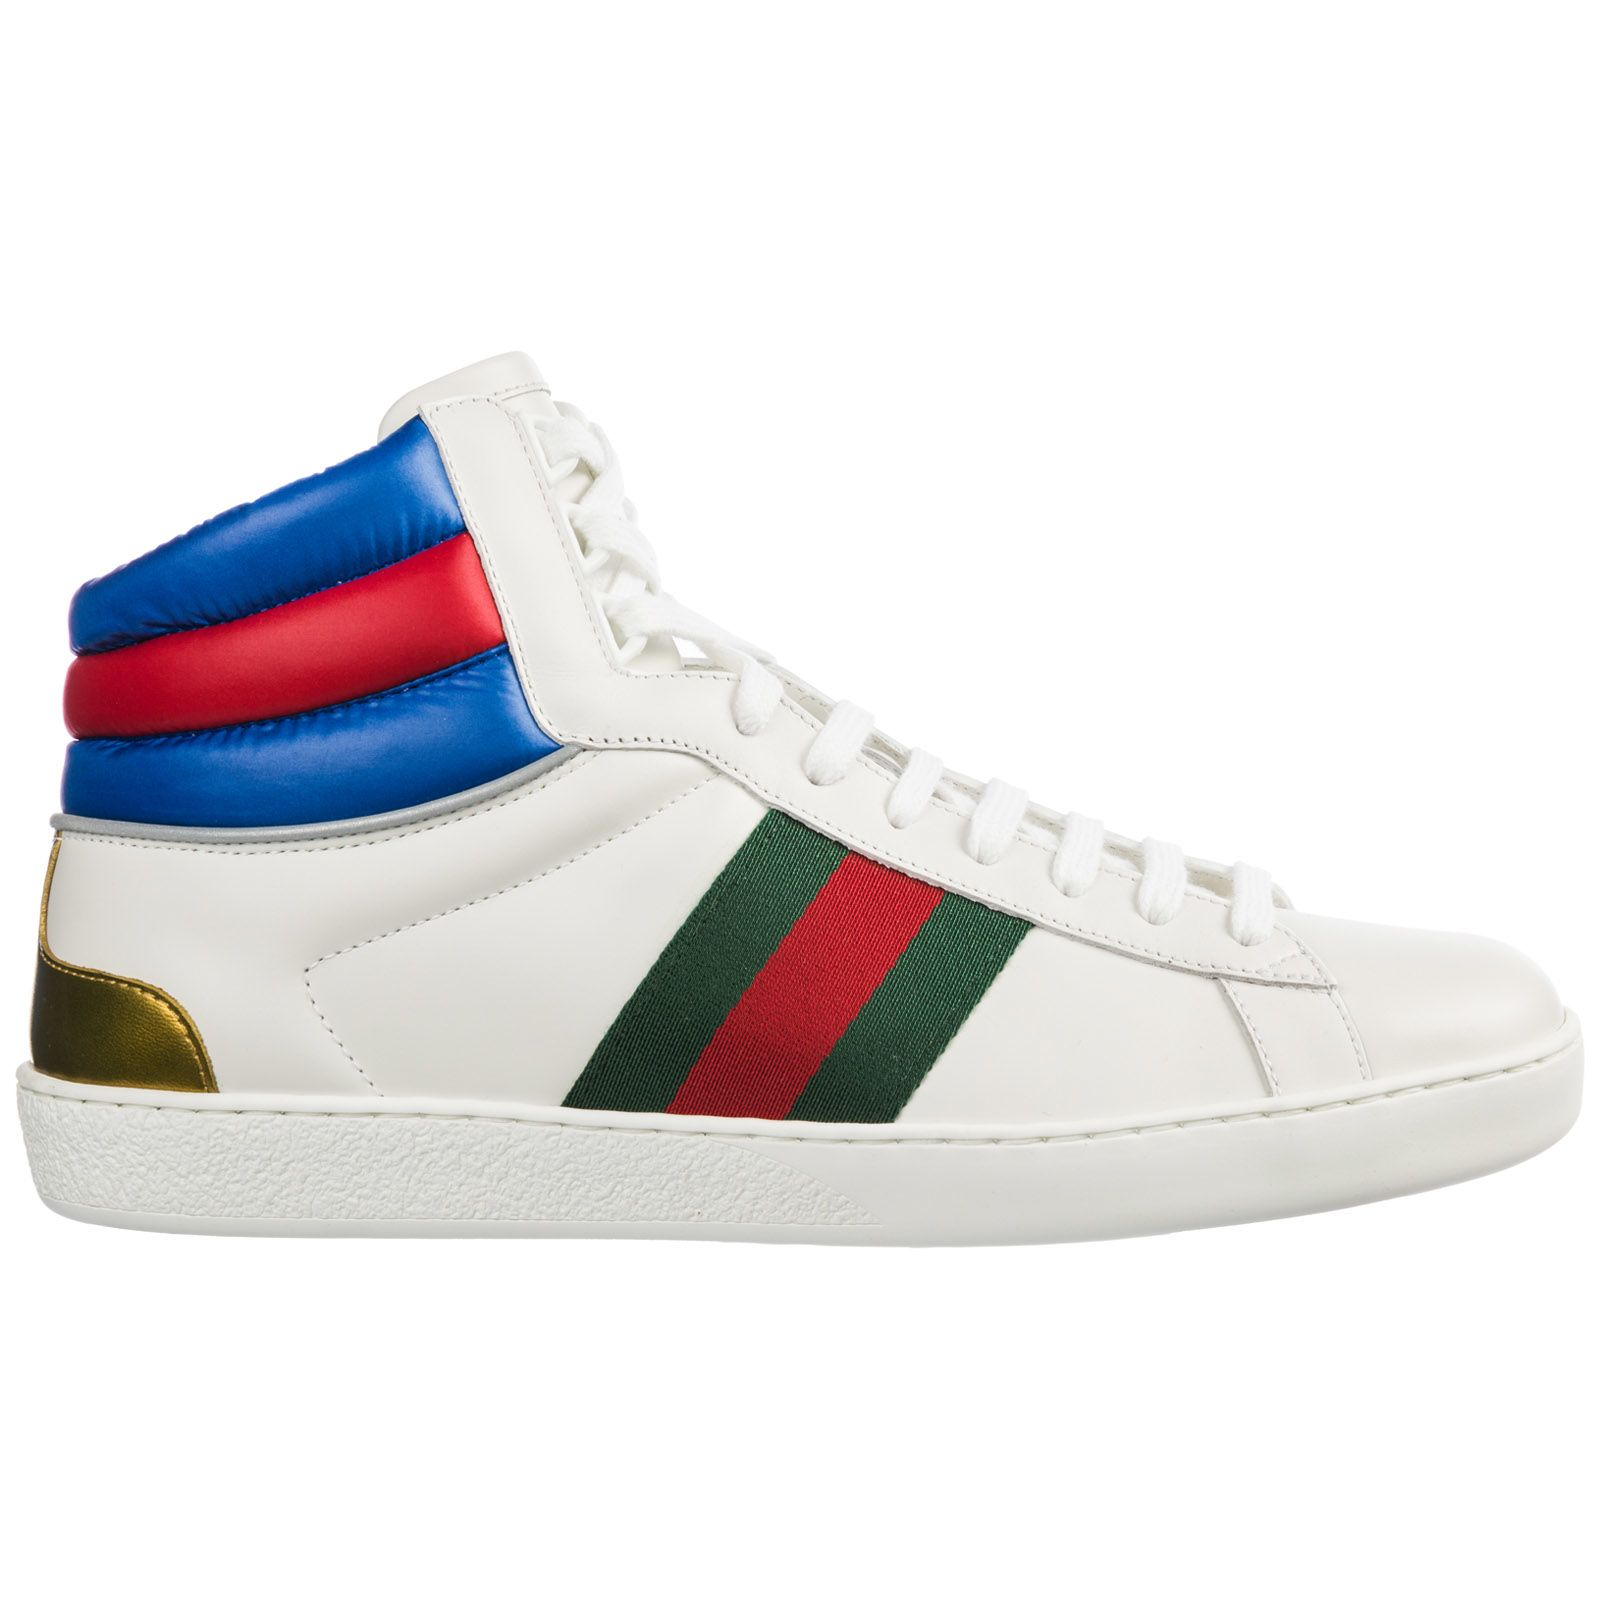 e1082e7ec3d0 Gucci Gucci Shoes High Top Leather Trainers Sneakers Ace - Bianco ...